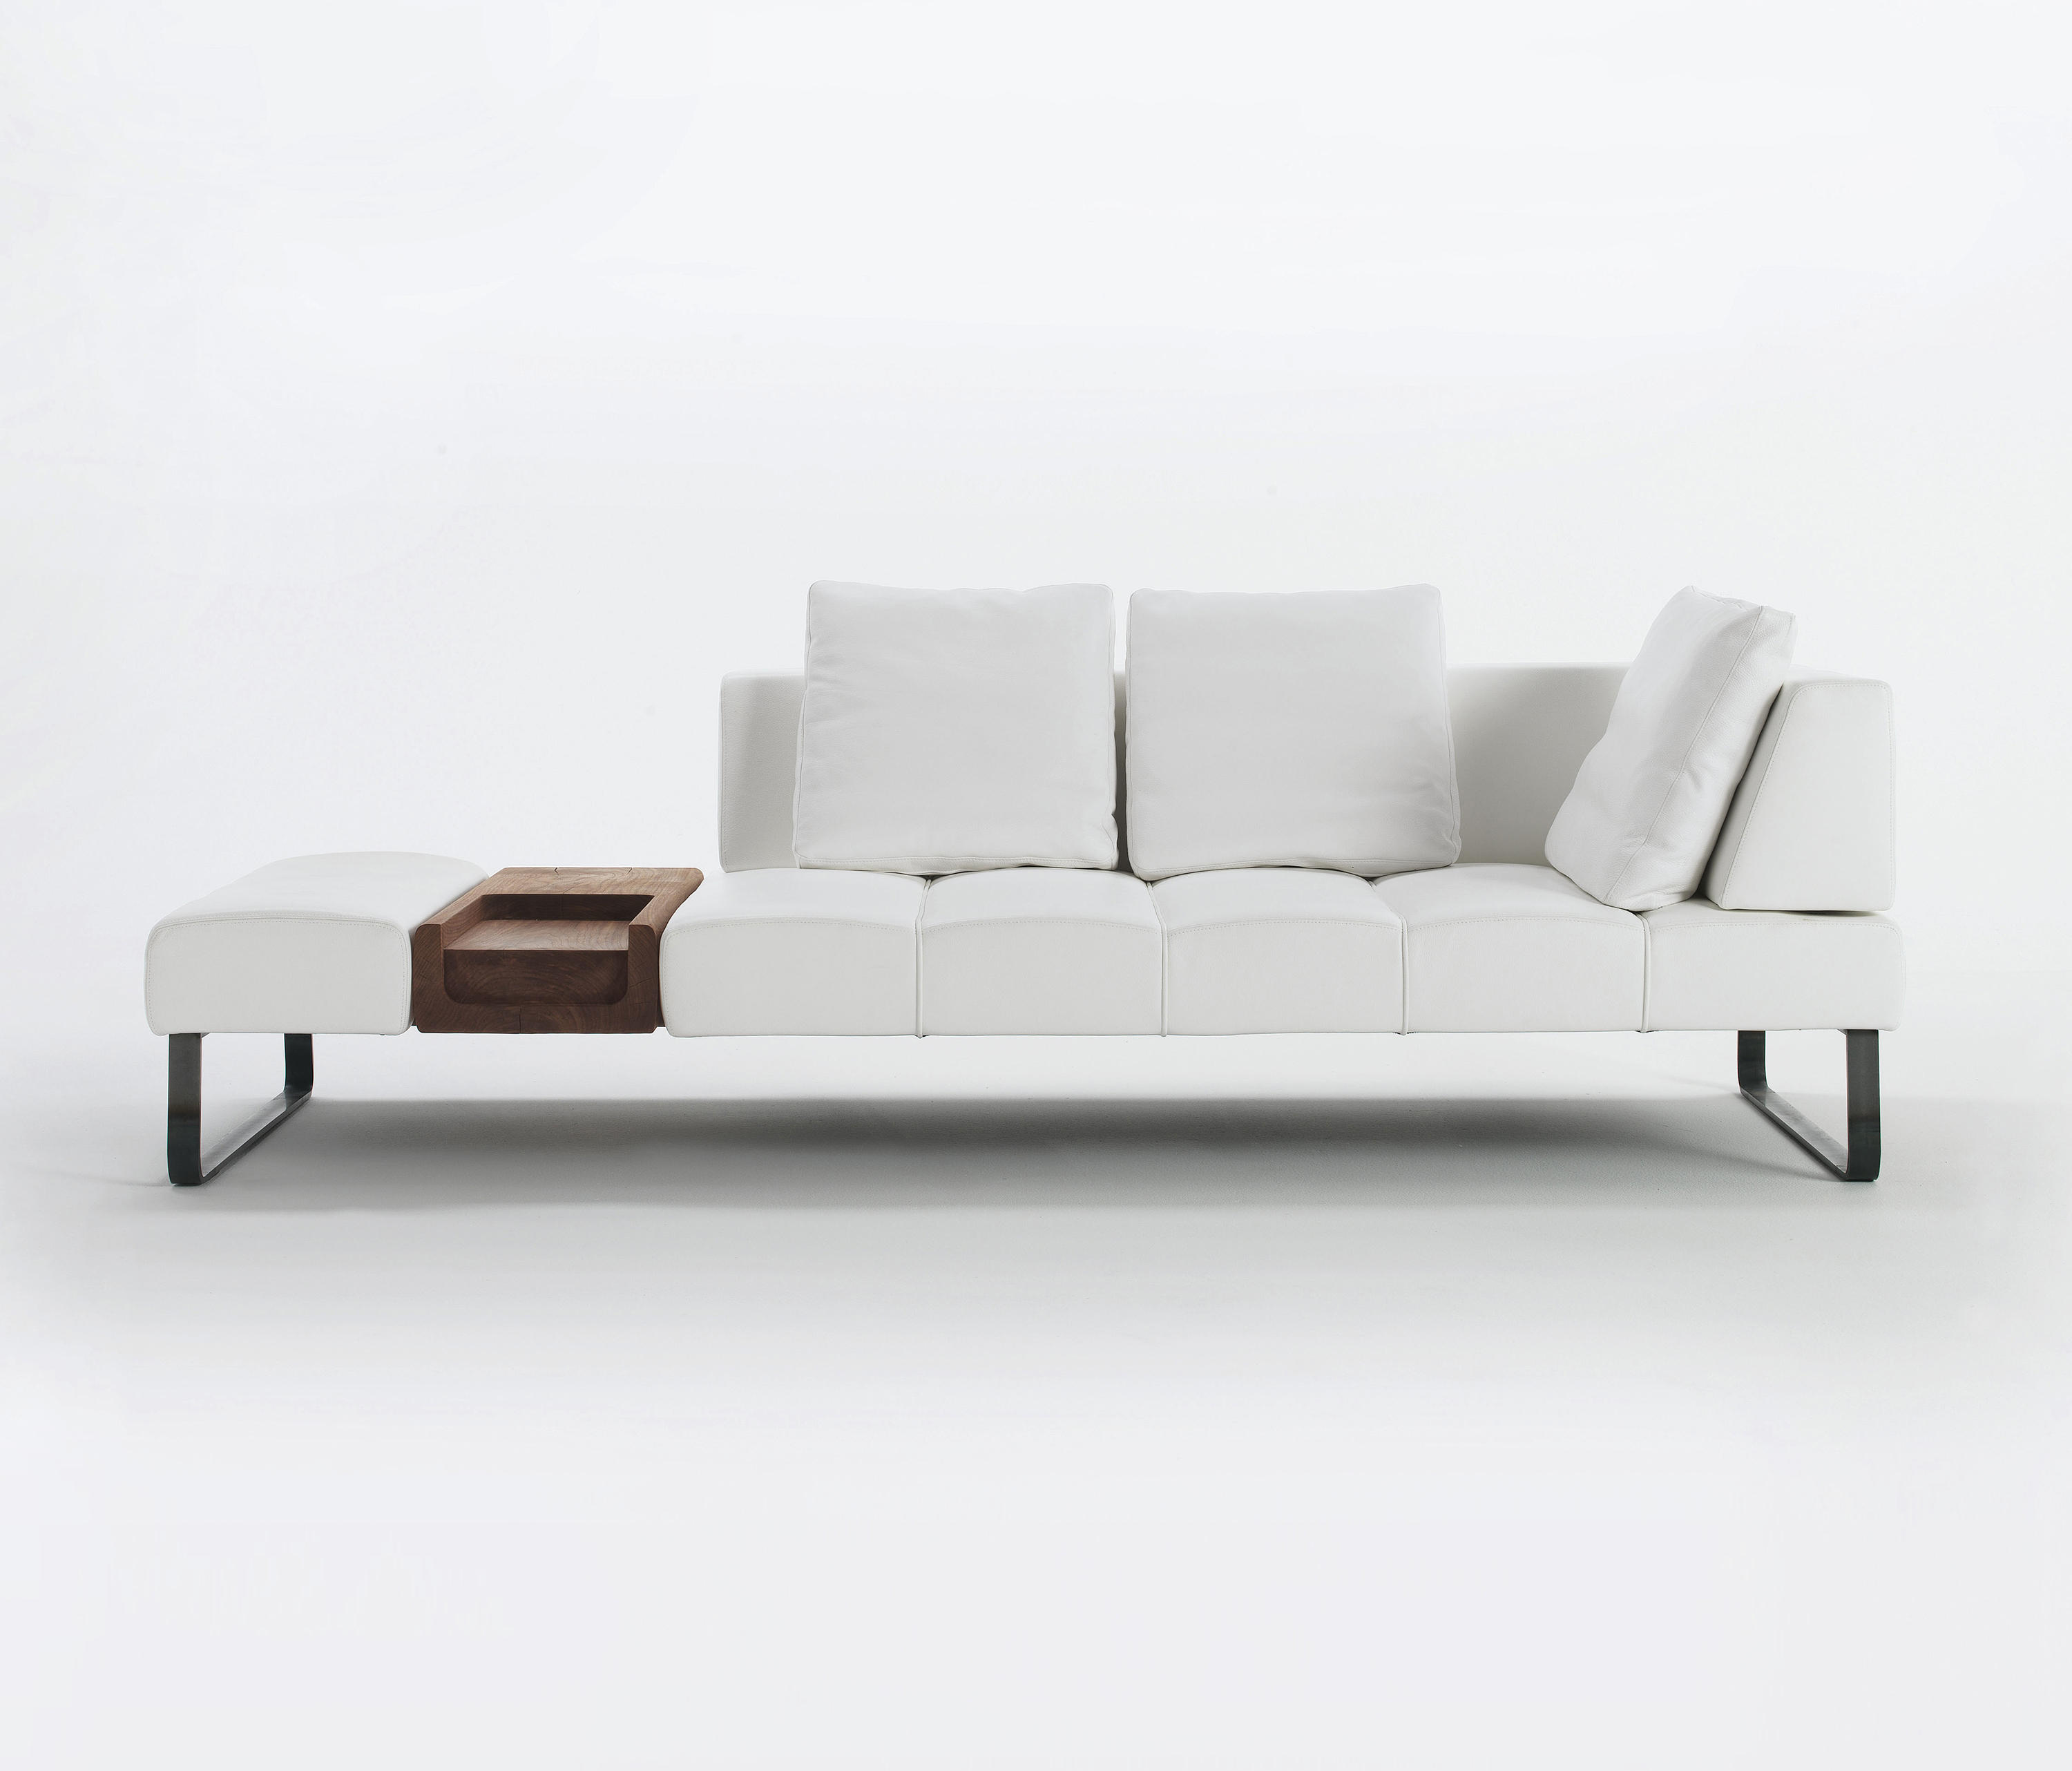 patmos sofa lounge sofas from riva 1920 architonic. Black Bedroom Furniture Sets. Home Design Ideas